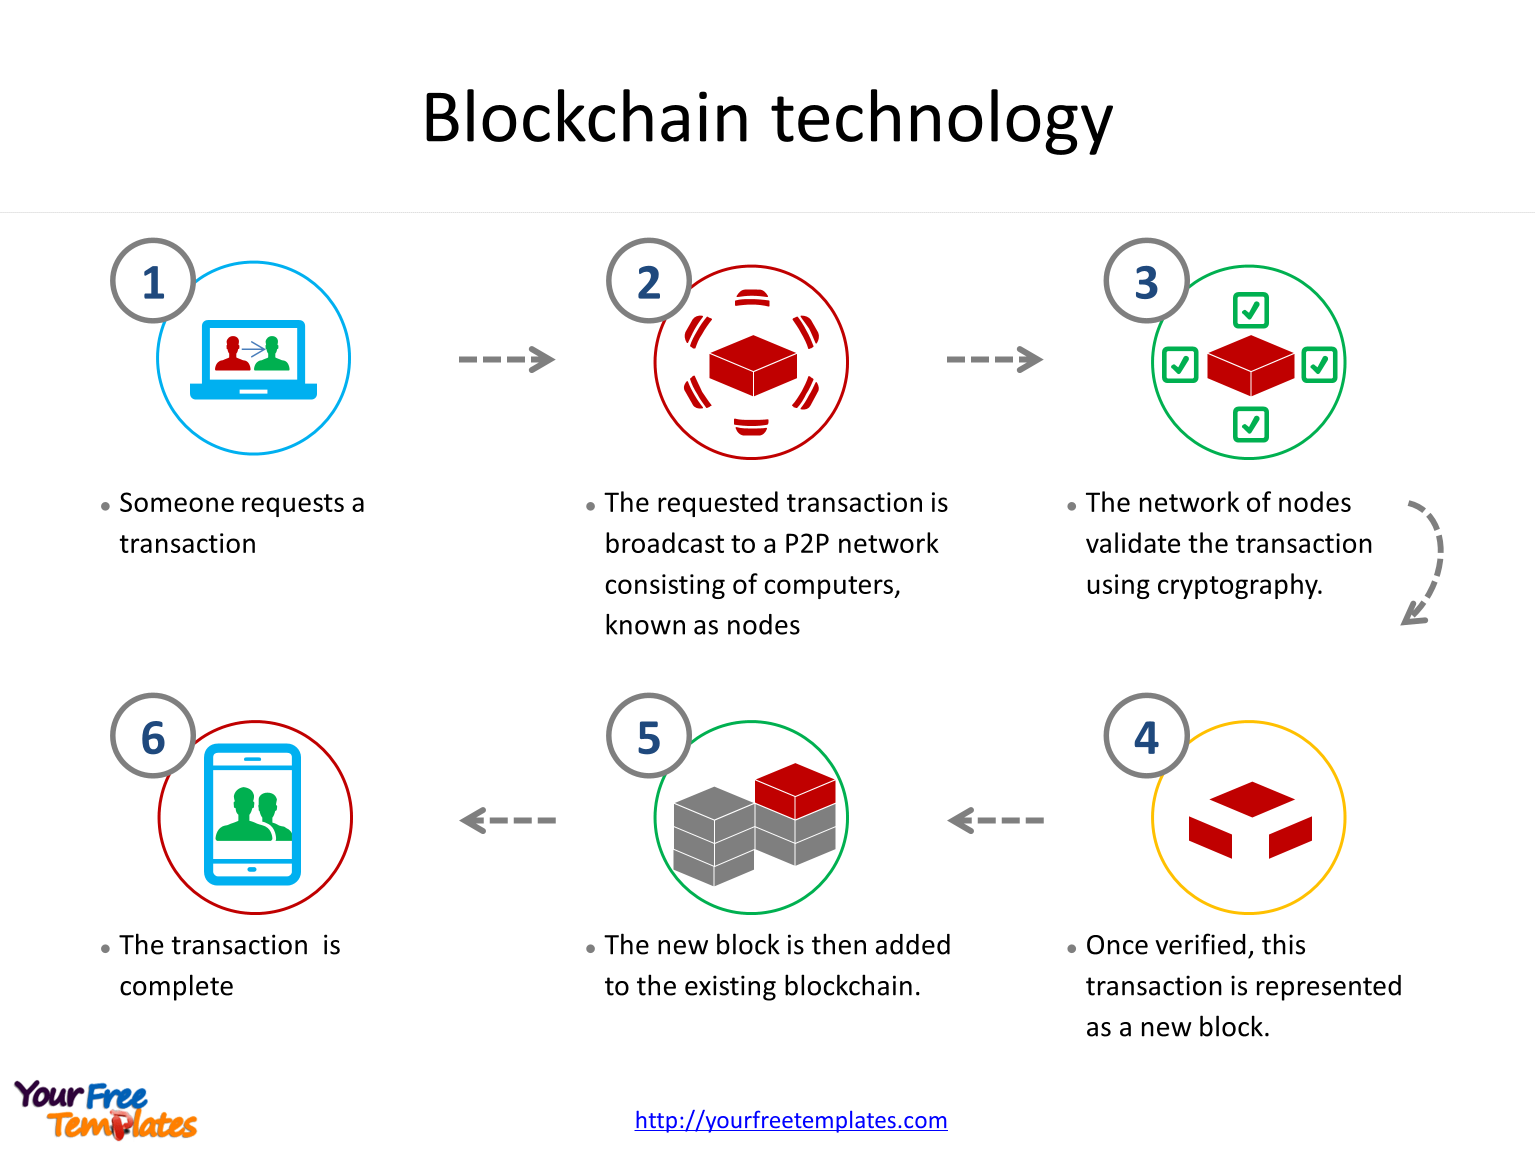 let's have a look at Block chain technology; there are six steps for a transaction to be completed.